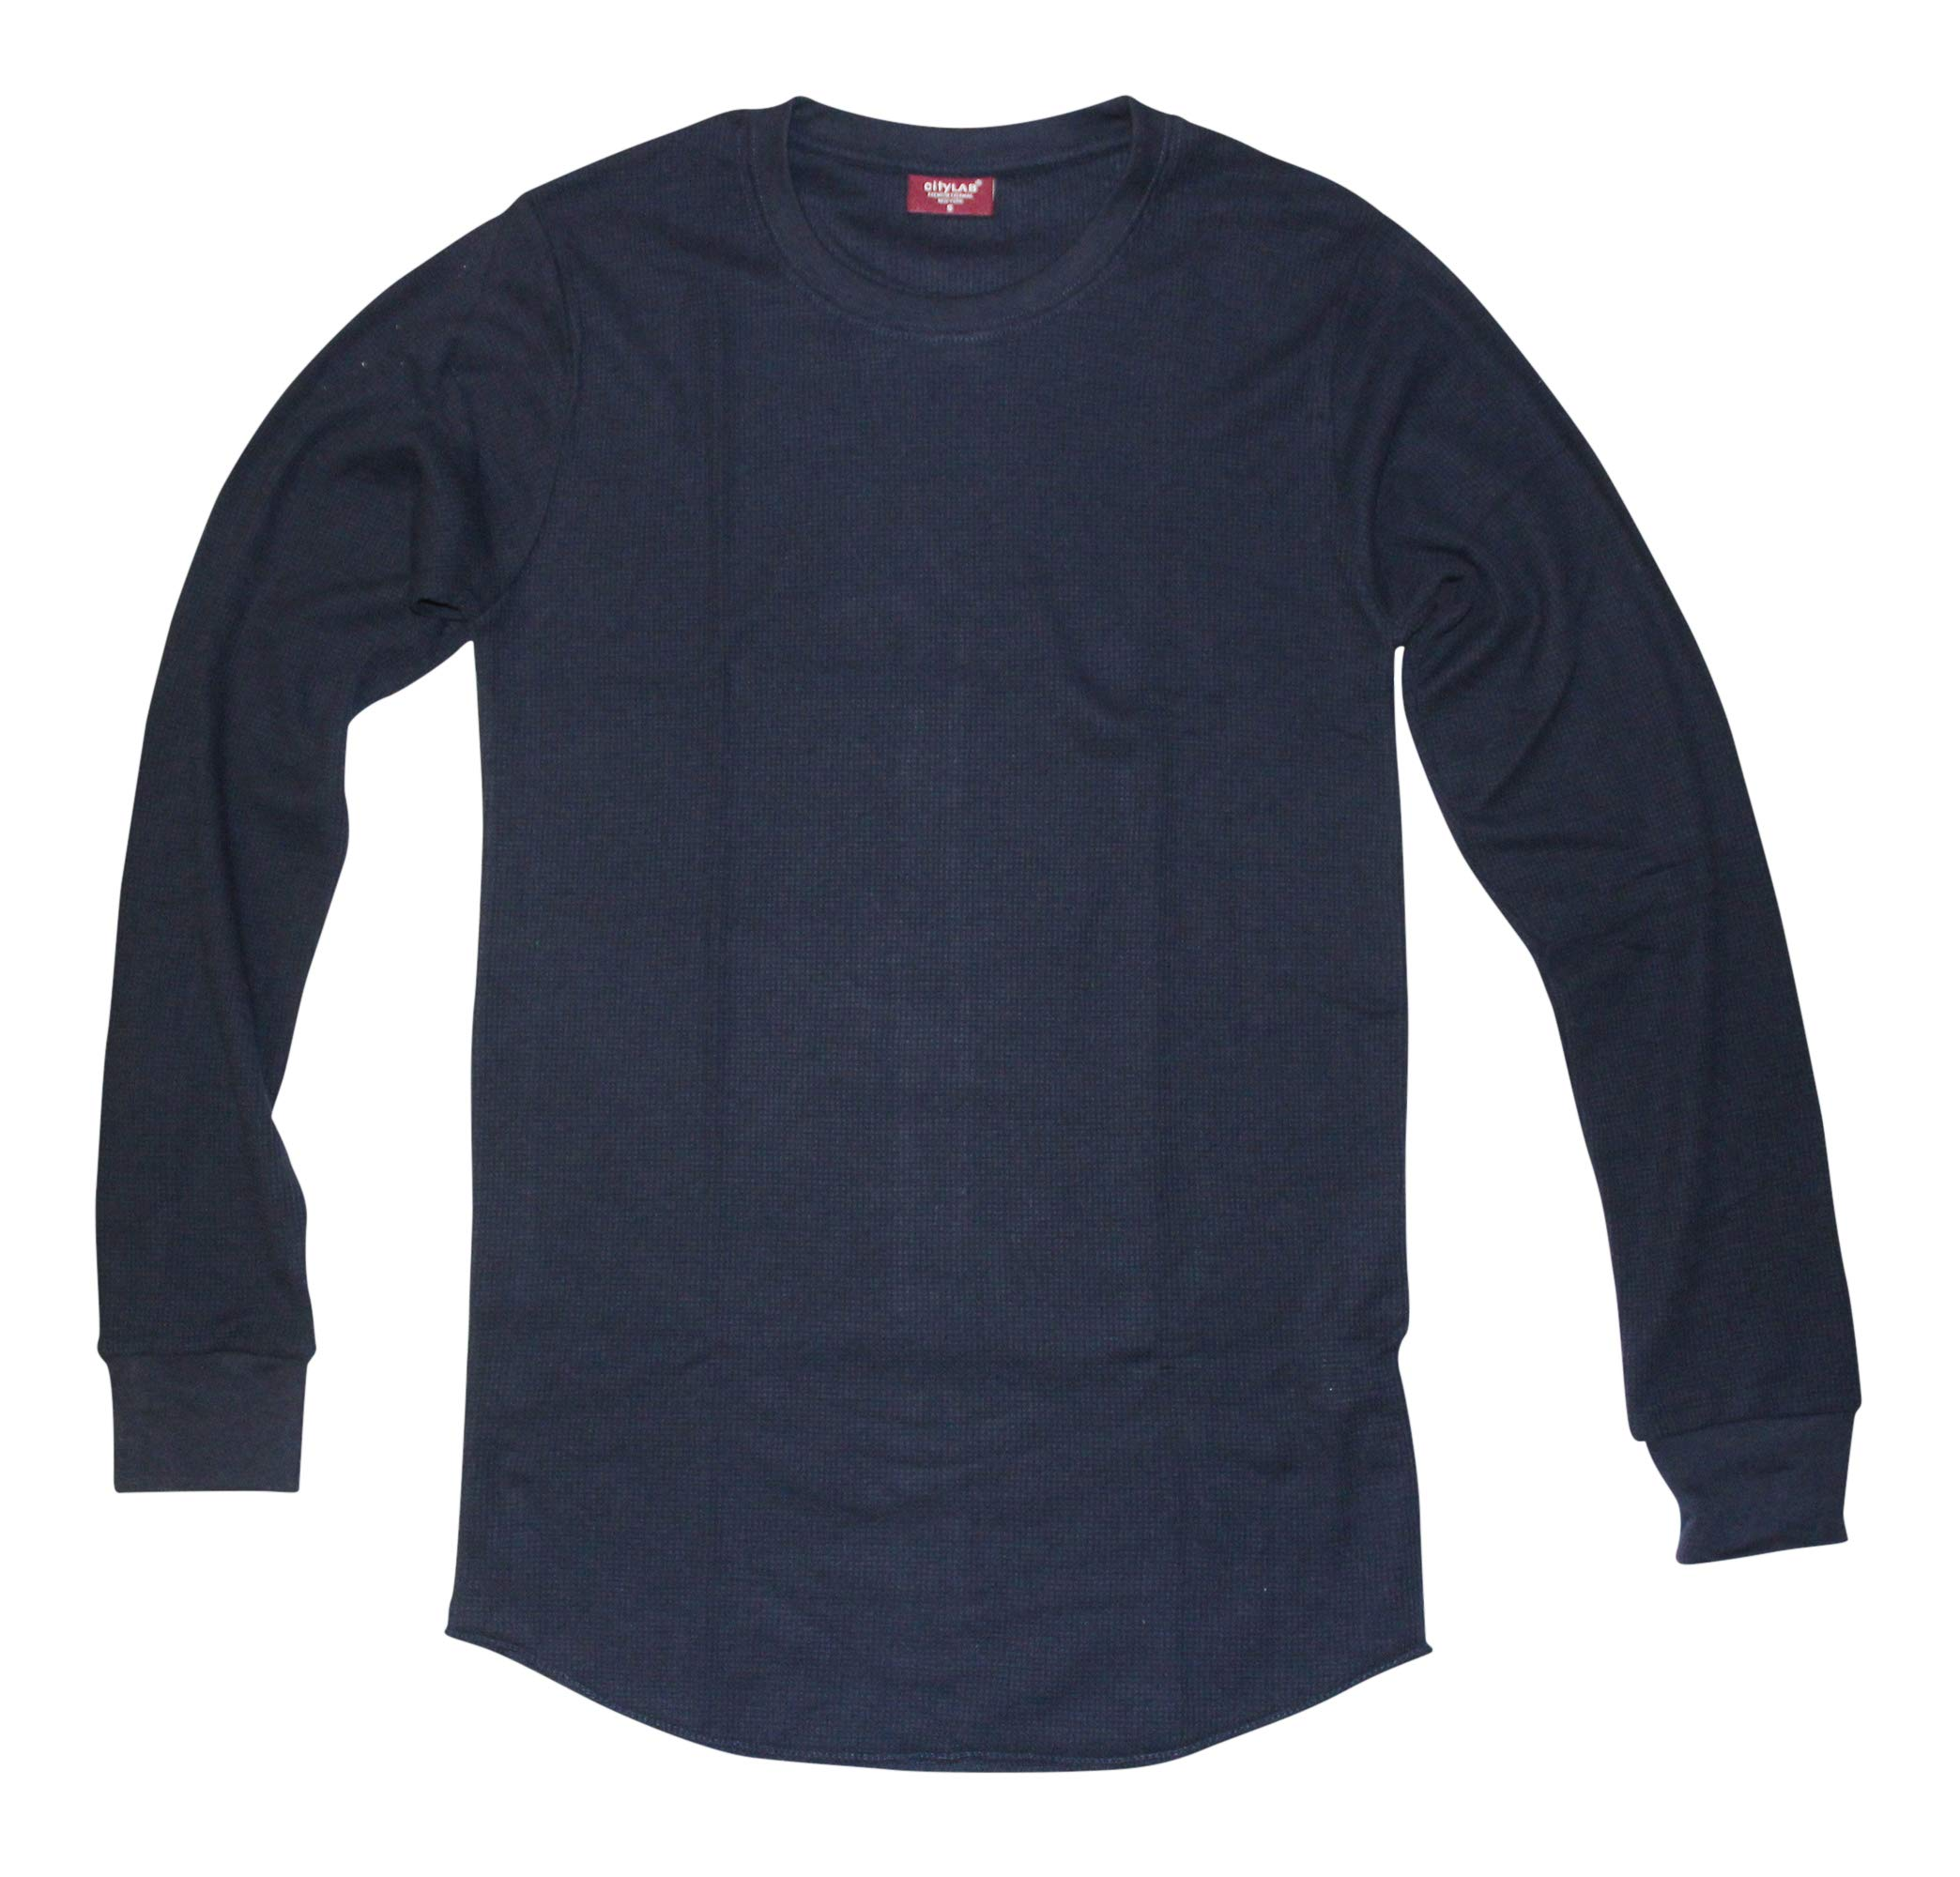 CITYLAB City Lab Fitted Thermal Crewneck Shirt, Navy, XXX-Large by CITYLAB